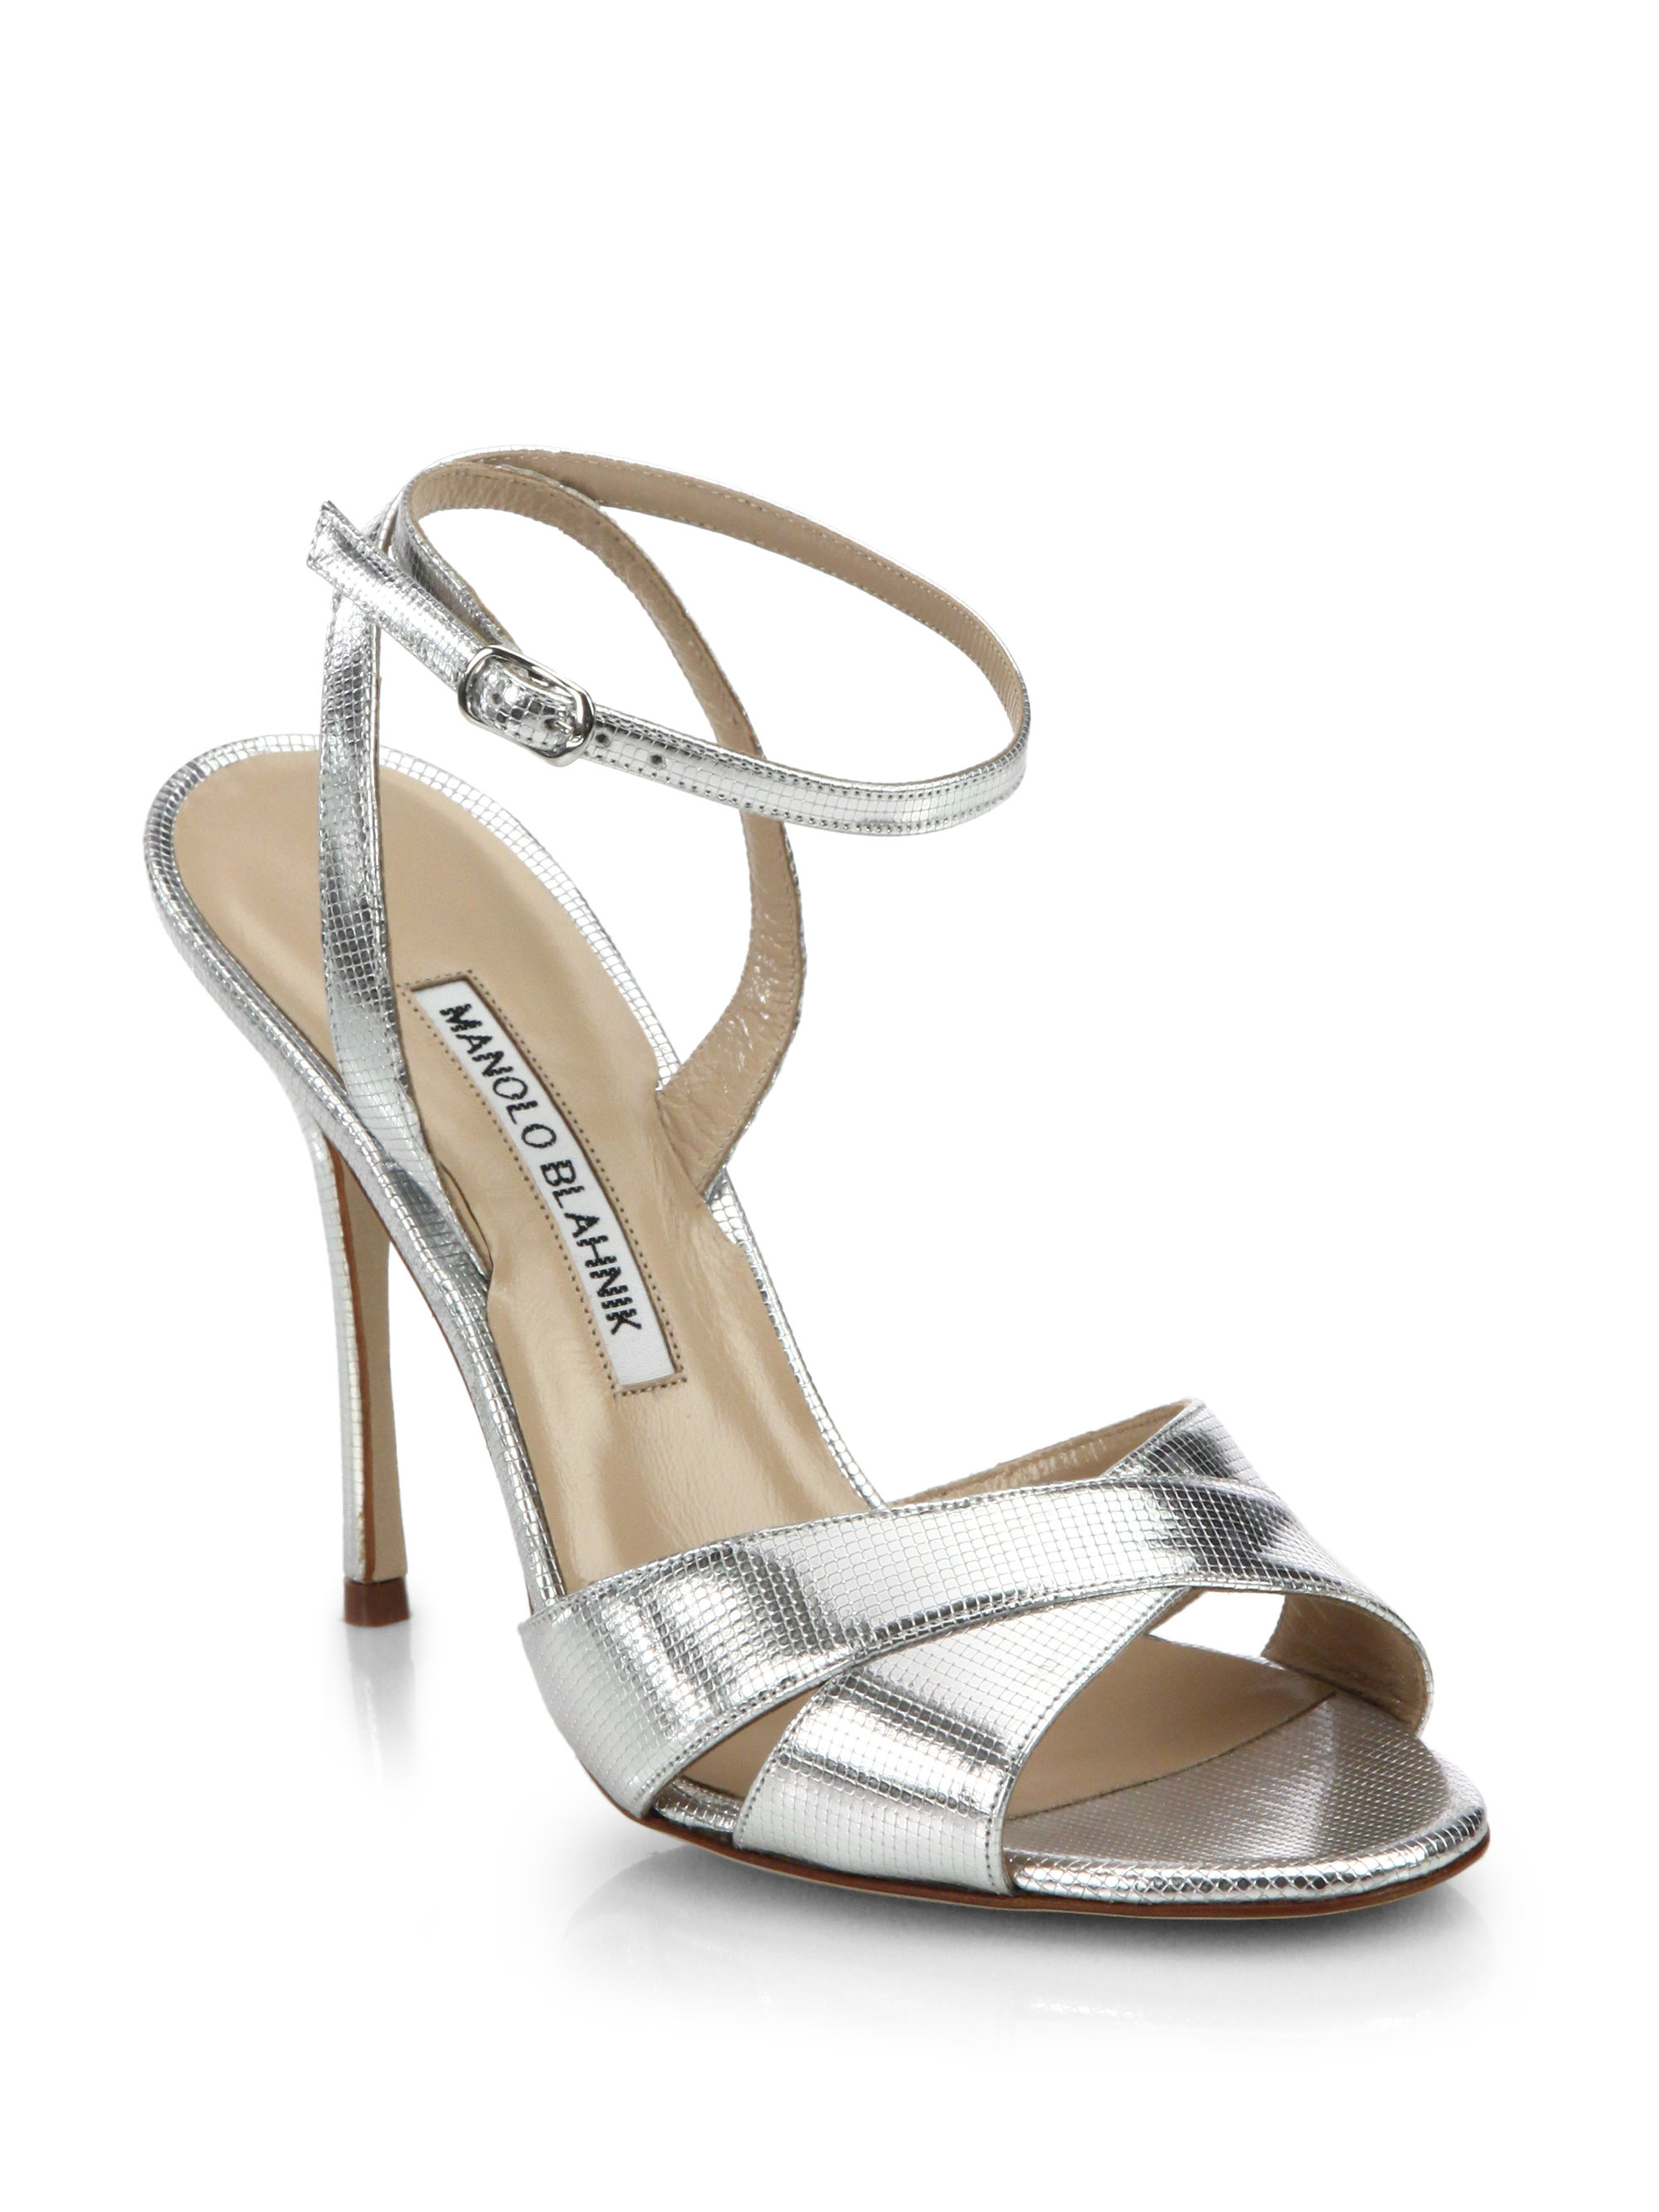 Manolo Blahnik Metallic Leather Sandals looking for sale online DWR7Kyz